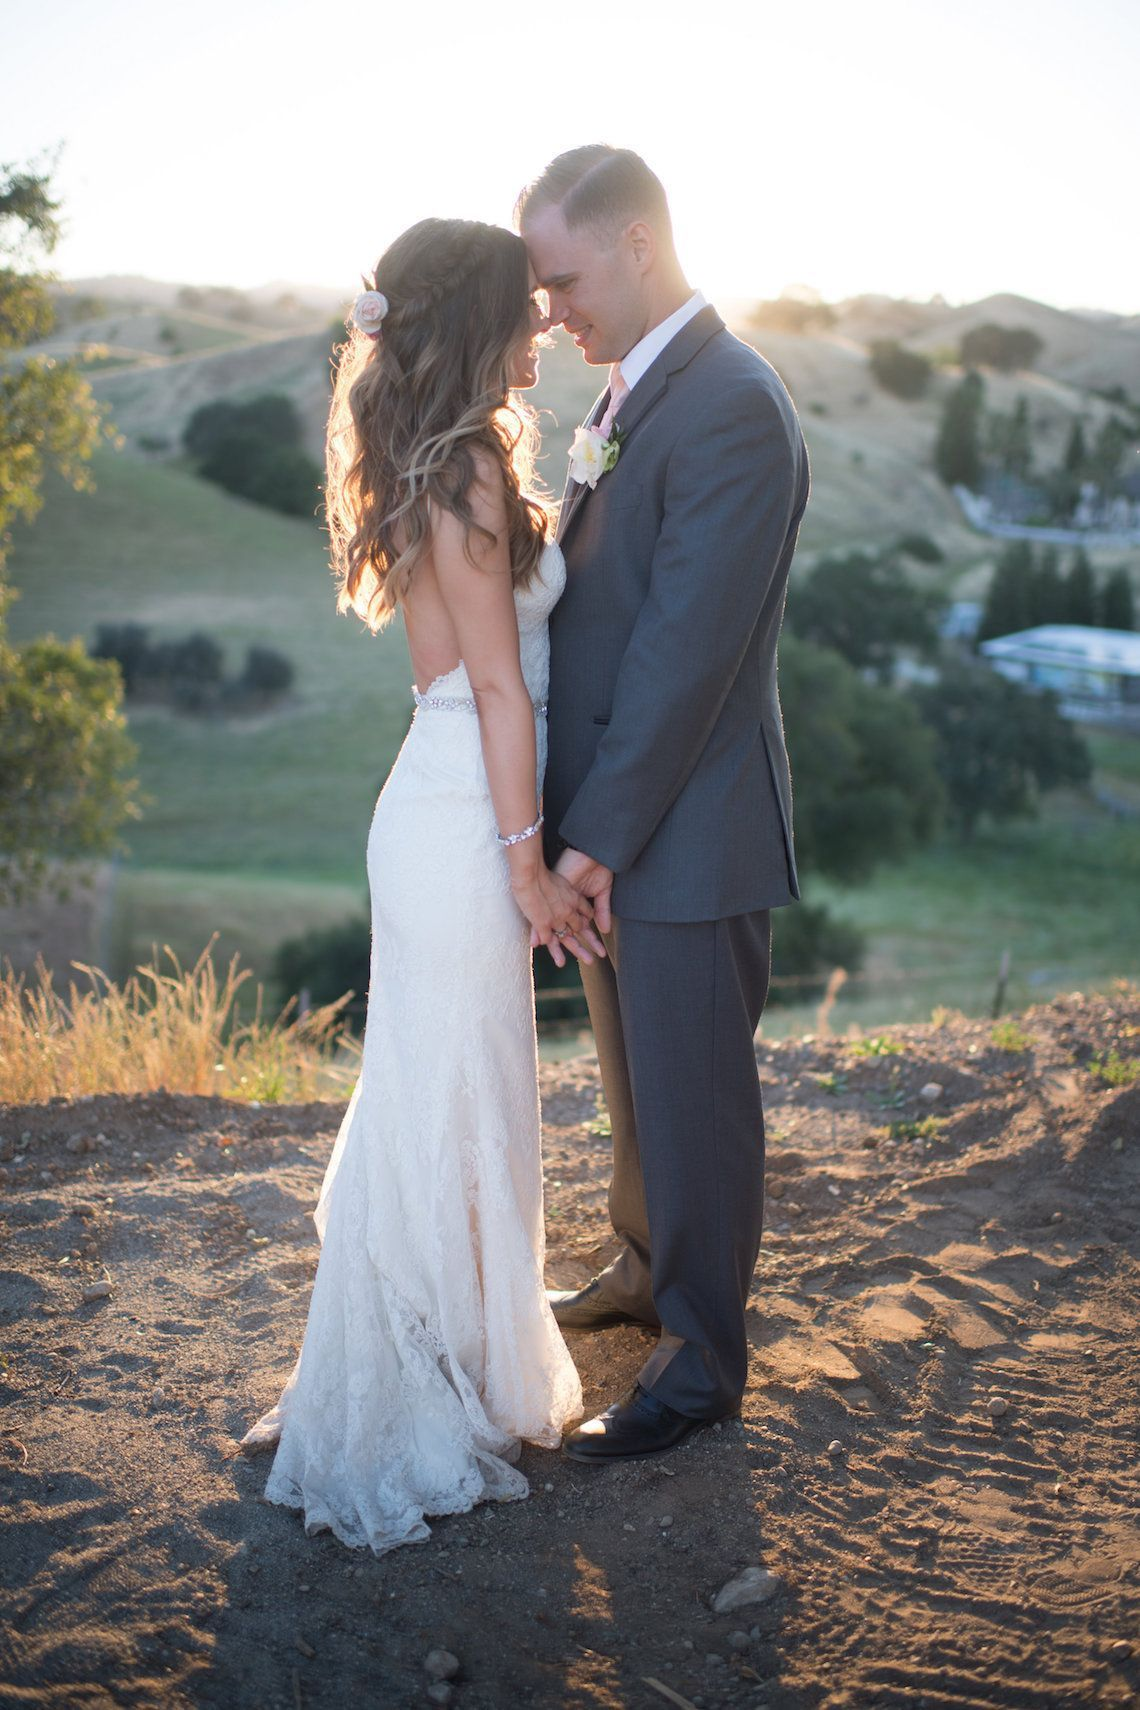 Do You Know What To Hire Your Wedding Photographer For Photography Questions Expertly